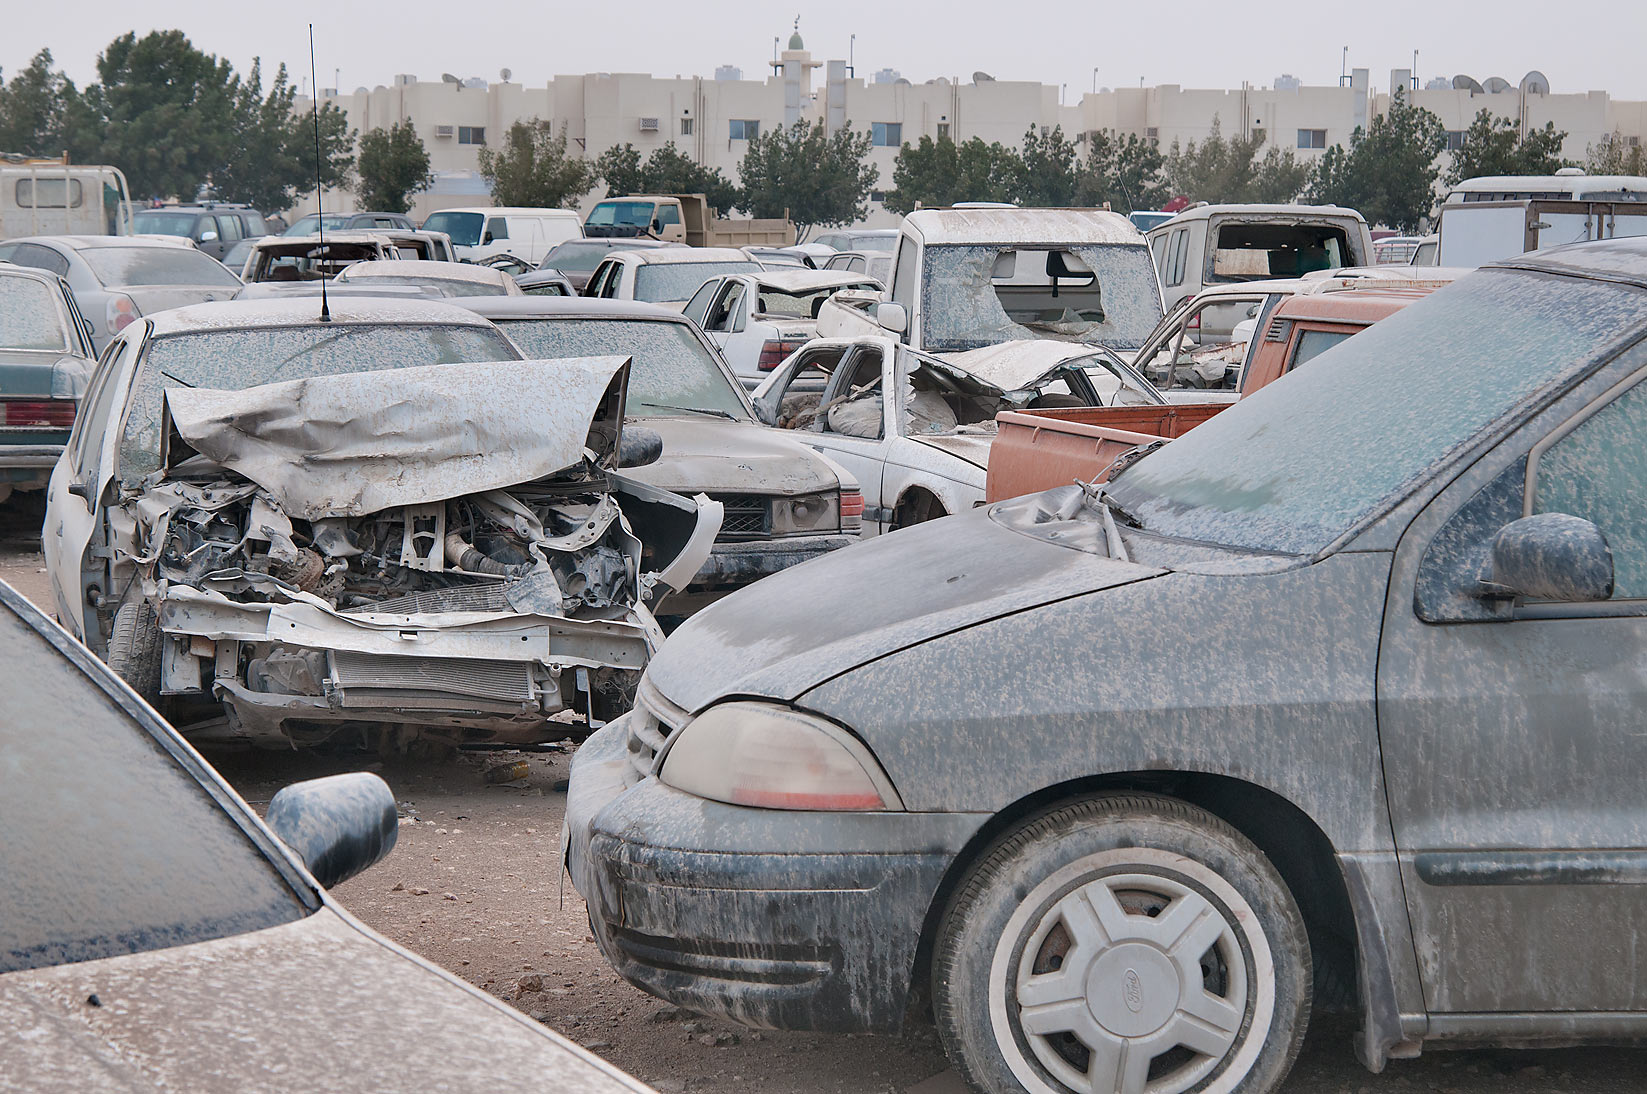 Dusty crashed cars near Al Mamoura Traffic Police...in Wholesale Markets area. Doha, Qatar